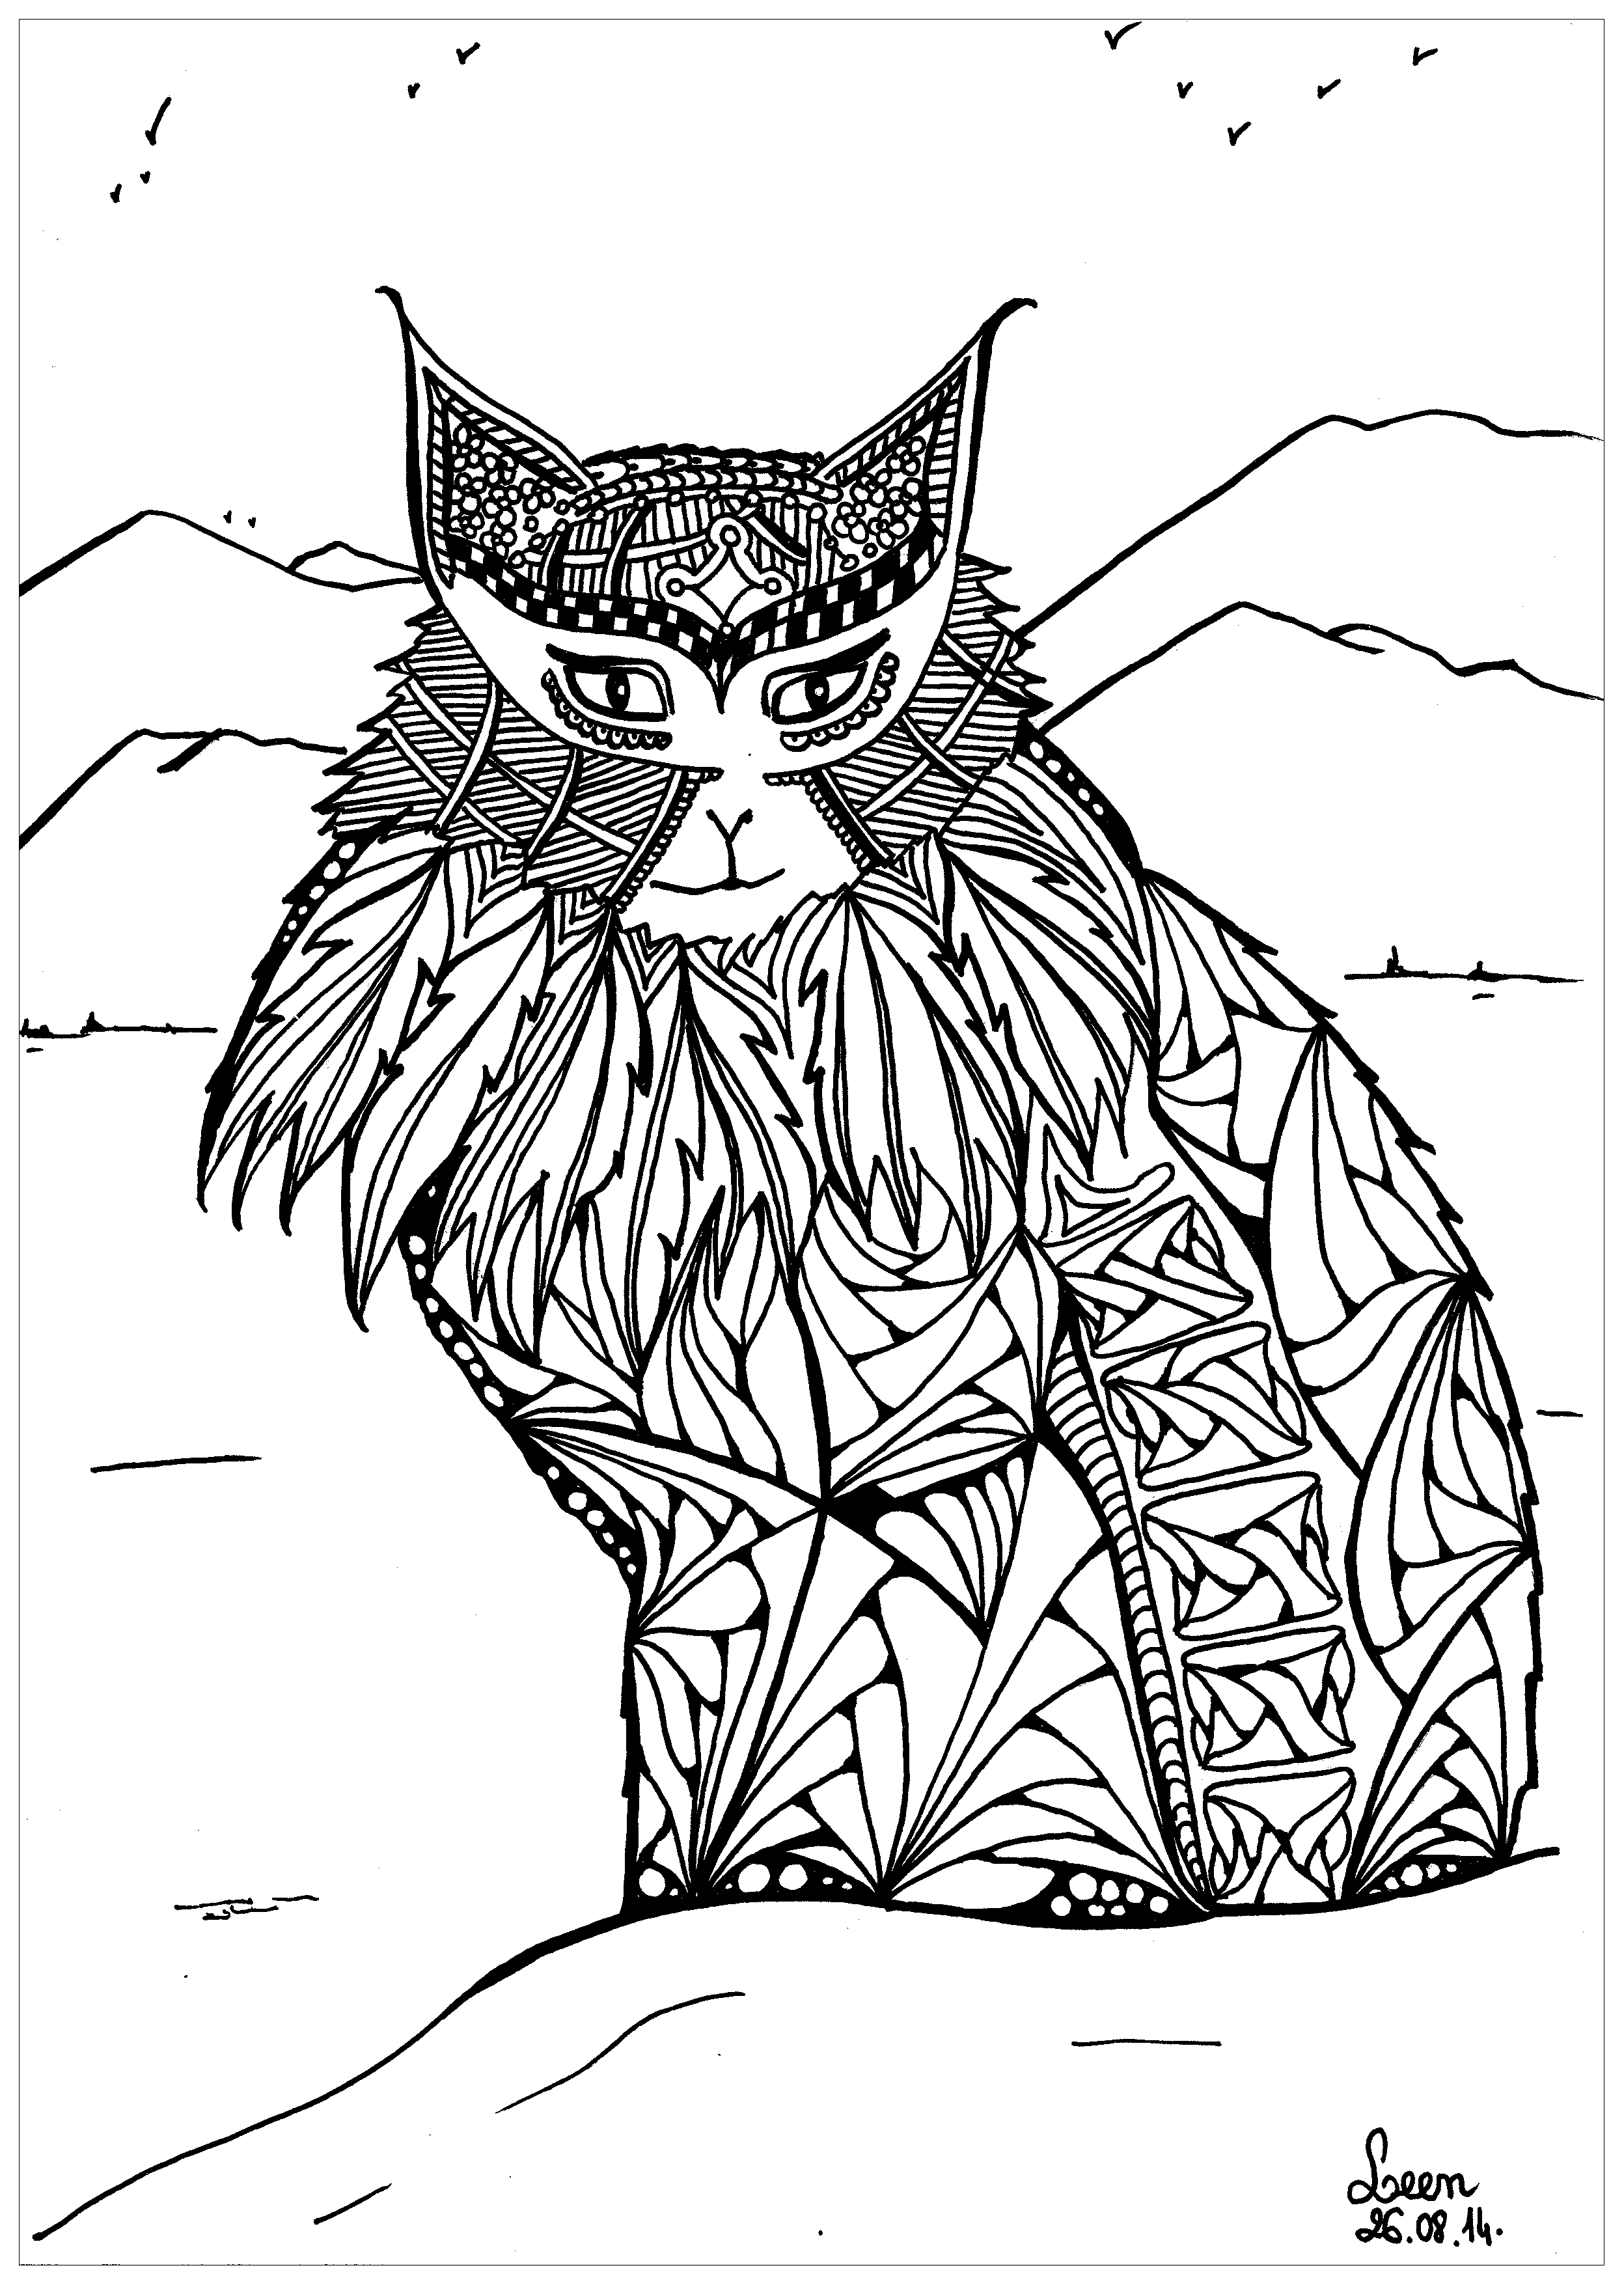 Coloring 'The mountains cat'